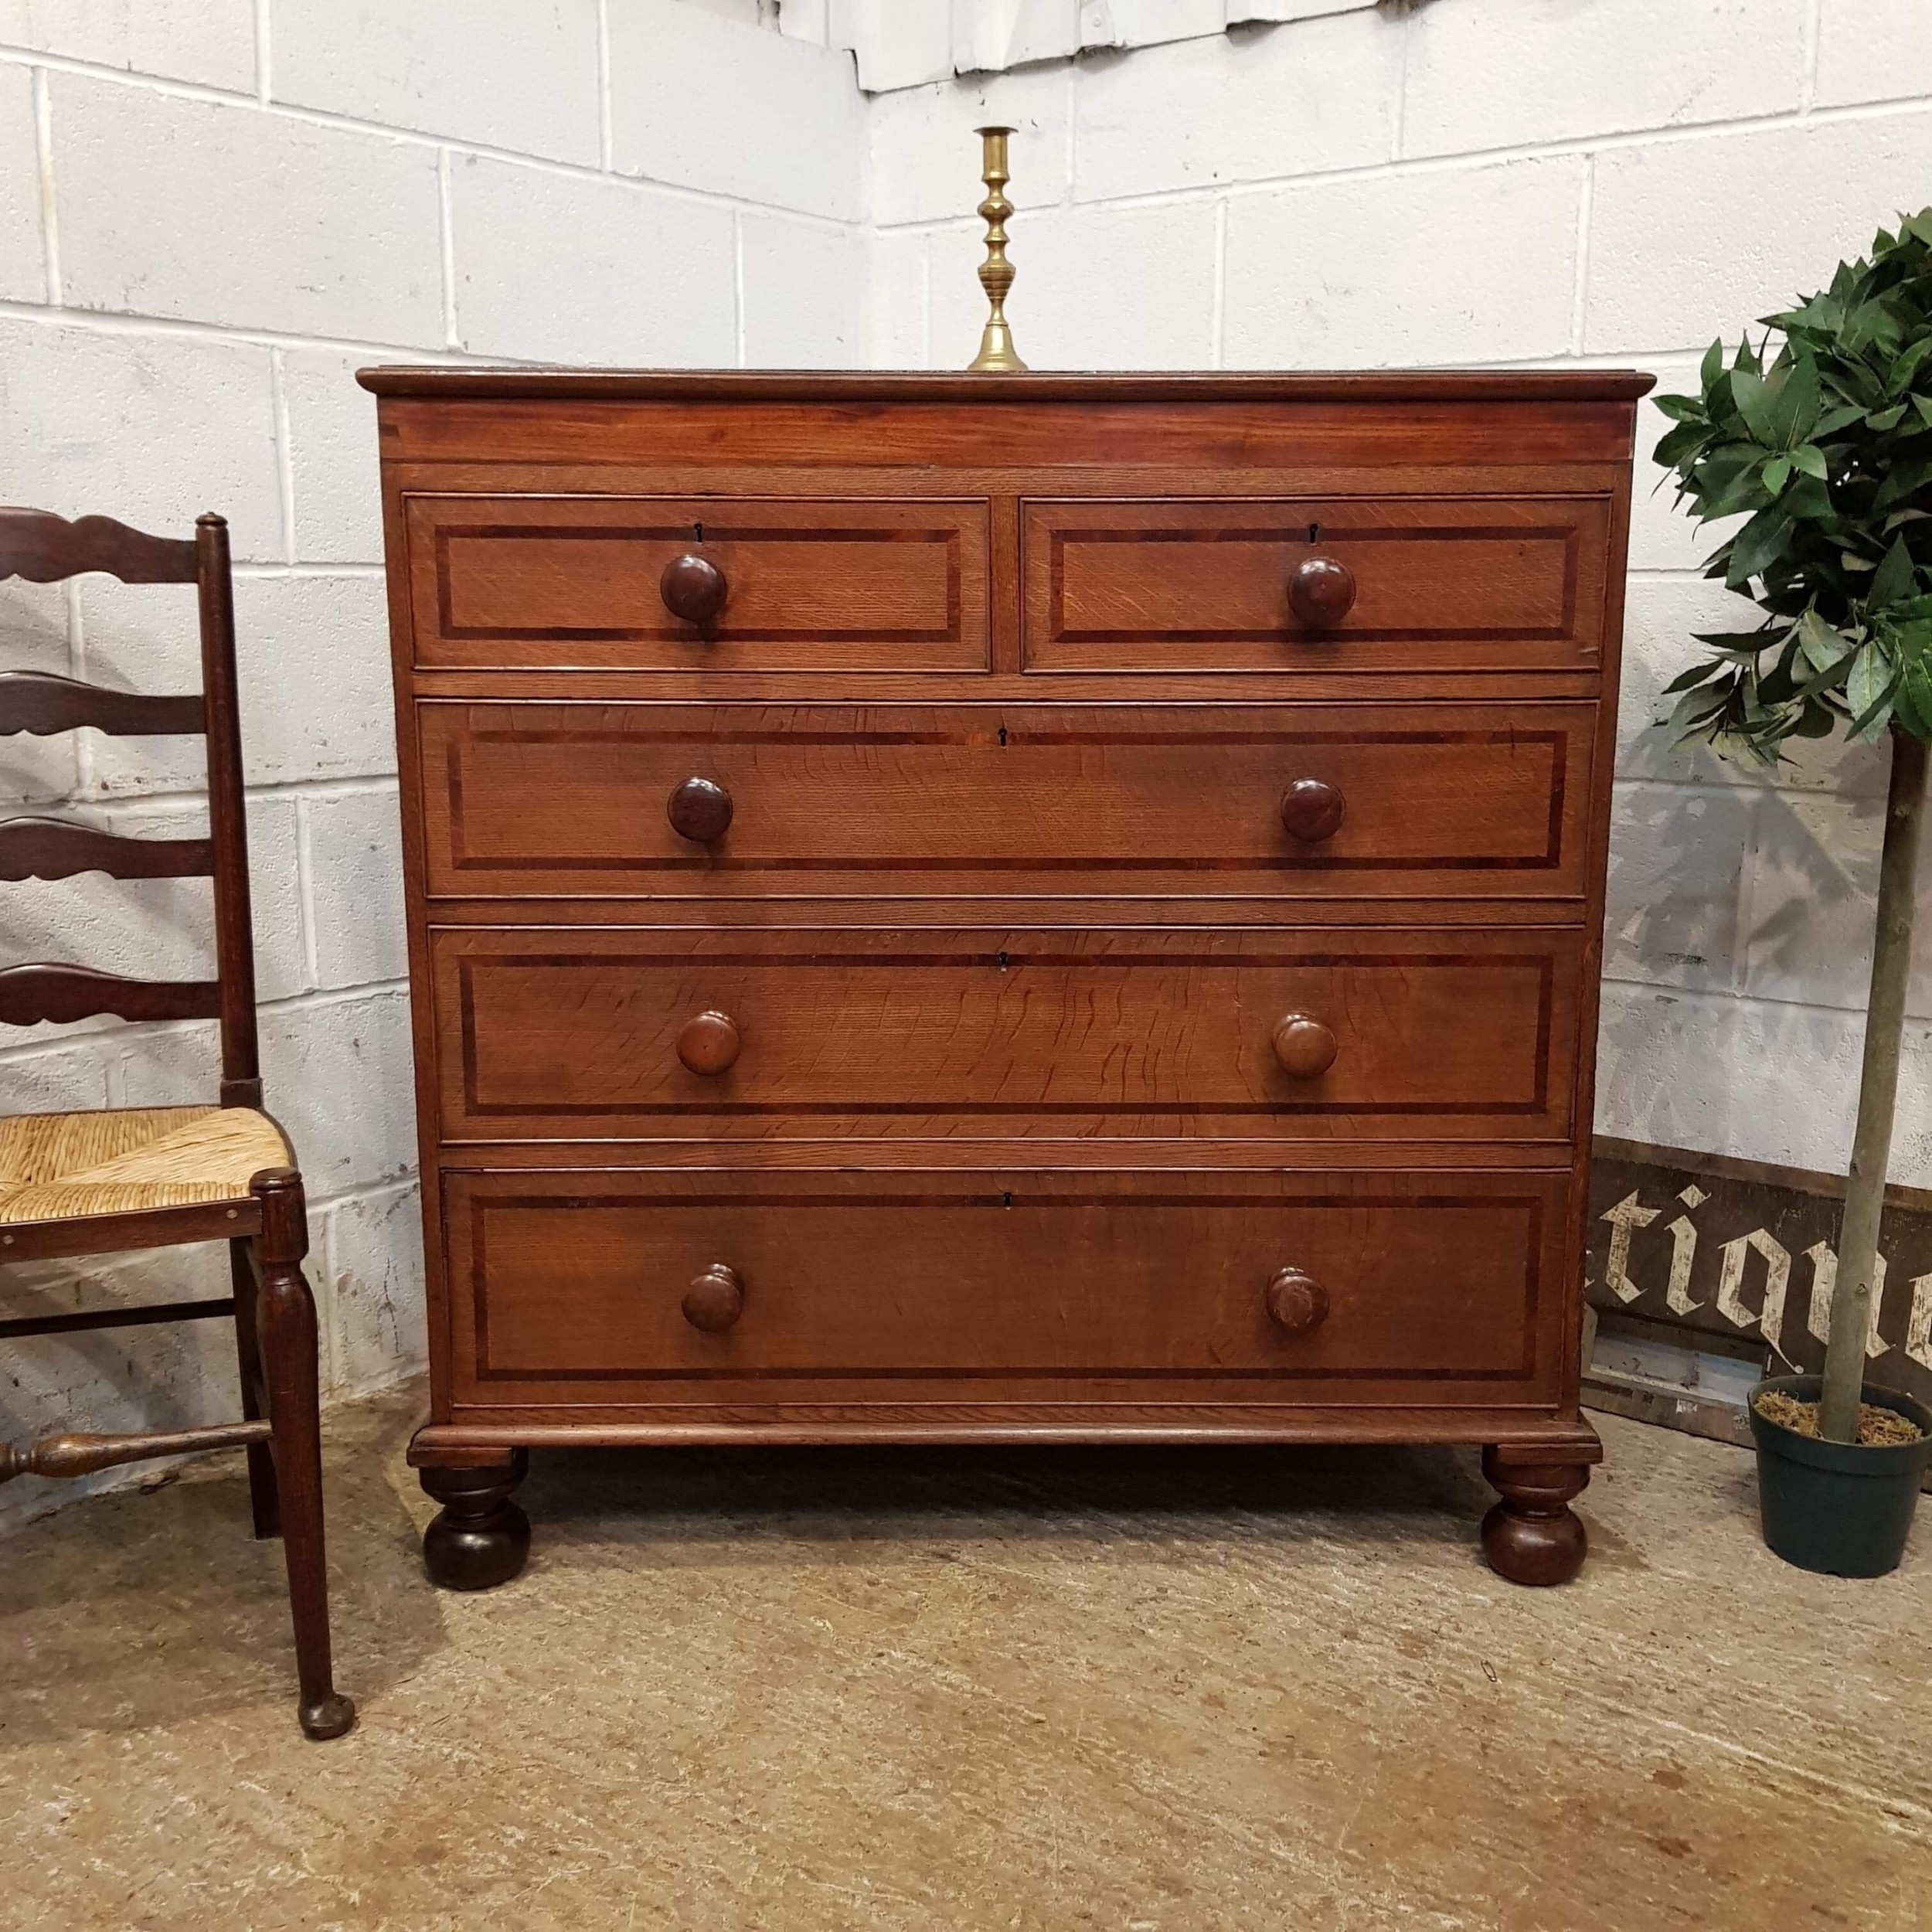 antique early victorian oak and mahogany chest of drawers c1840